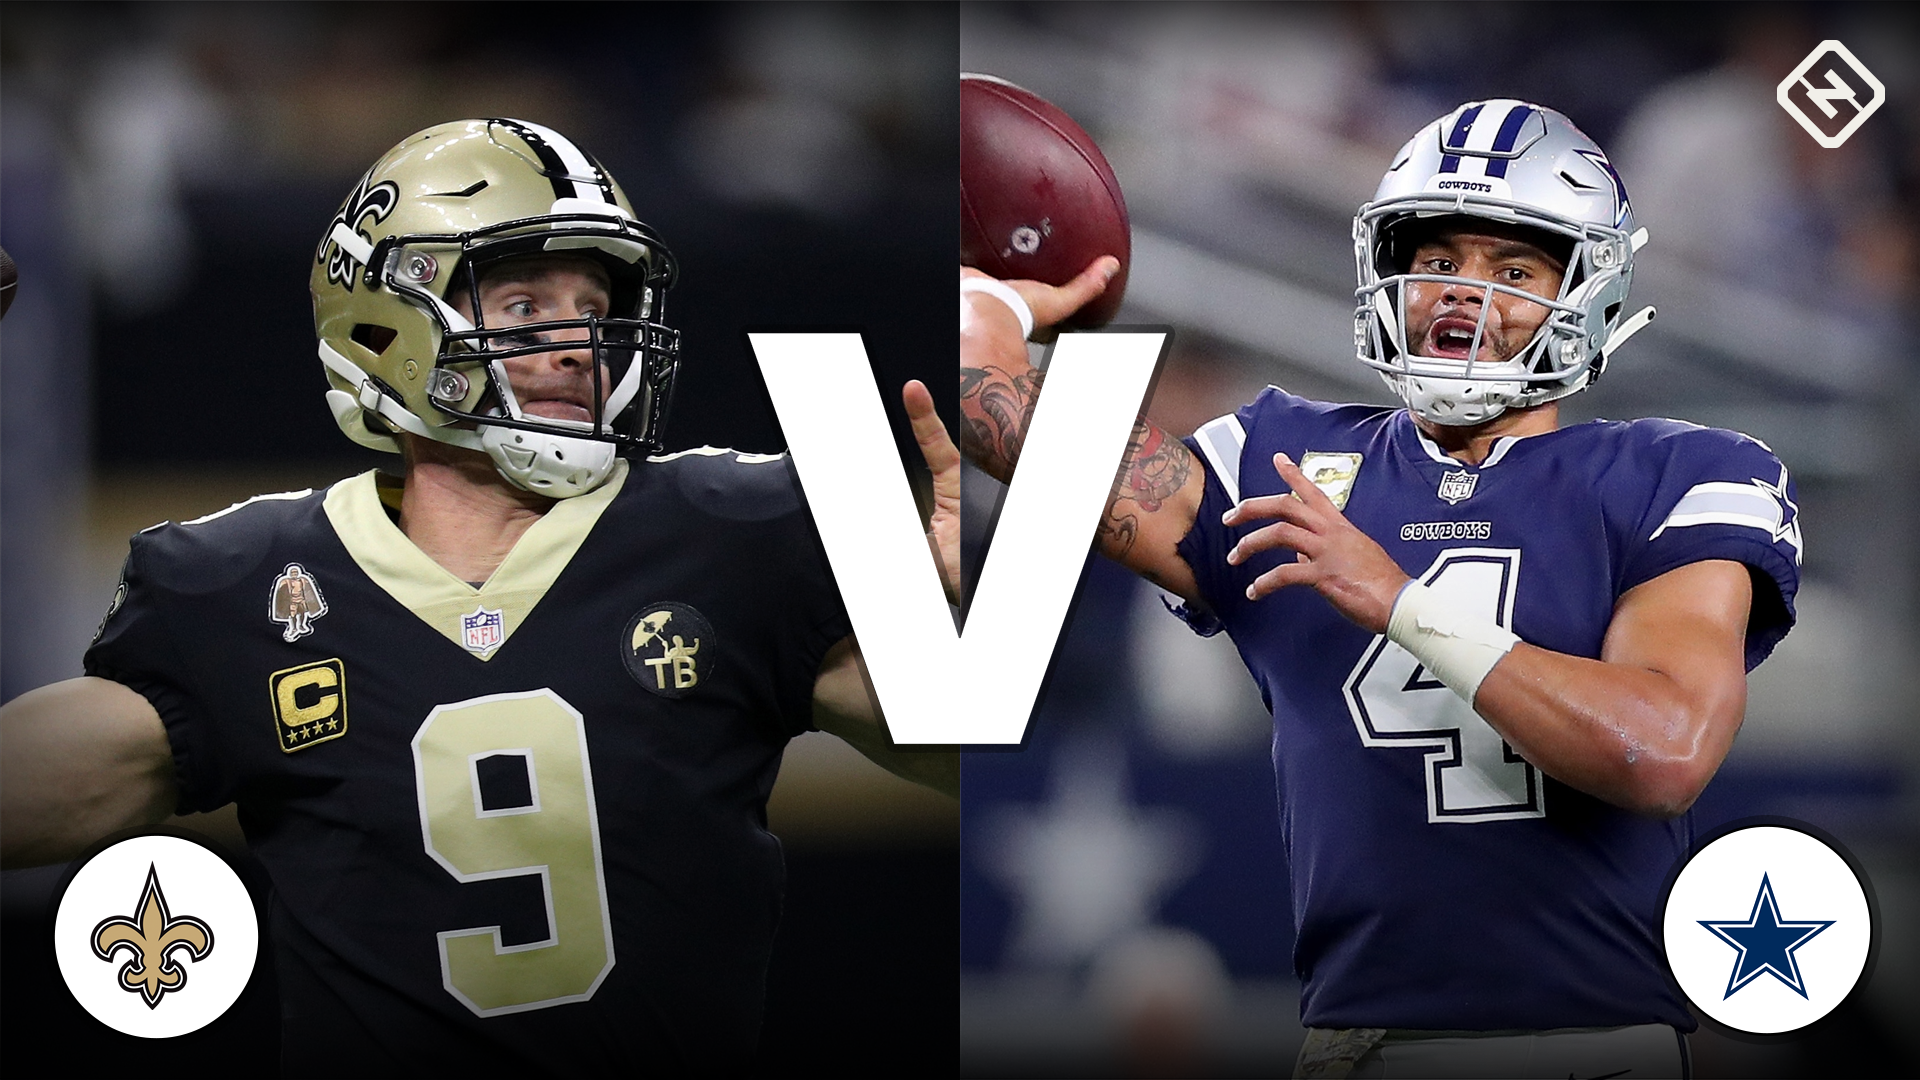 Saints Vs. Cowboys: Time, TV Channel, How To Watch Online | Sporting News